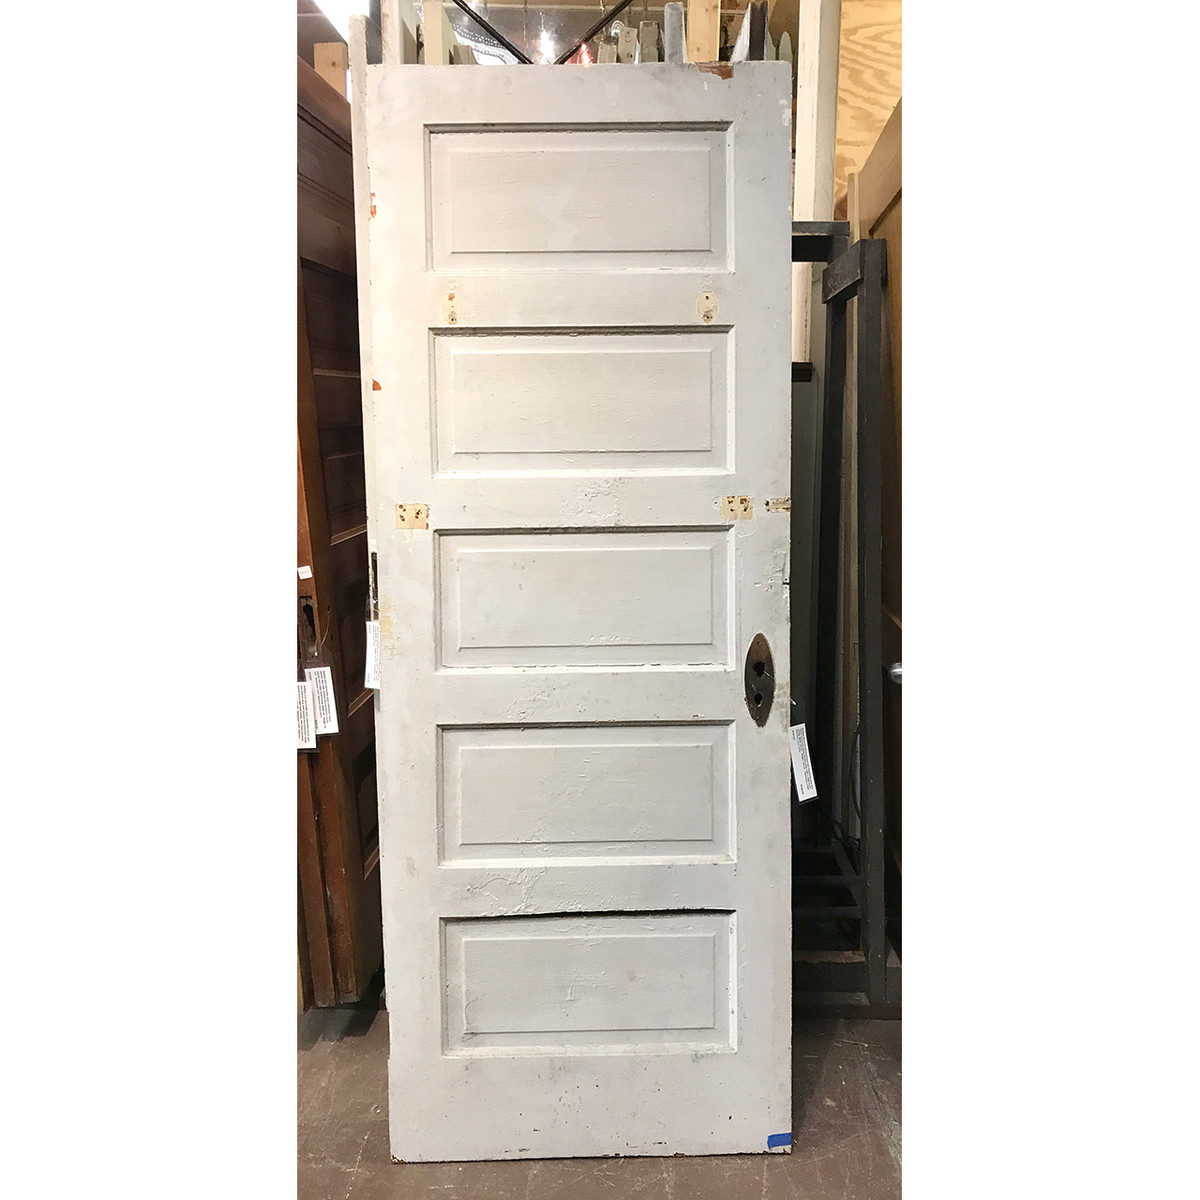 "D19123 - Antique Painted and Varnished Pine Five Horizontal Panel Interior Door 29-3/4"" x 79-1/4"""